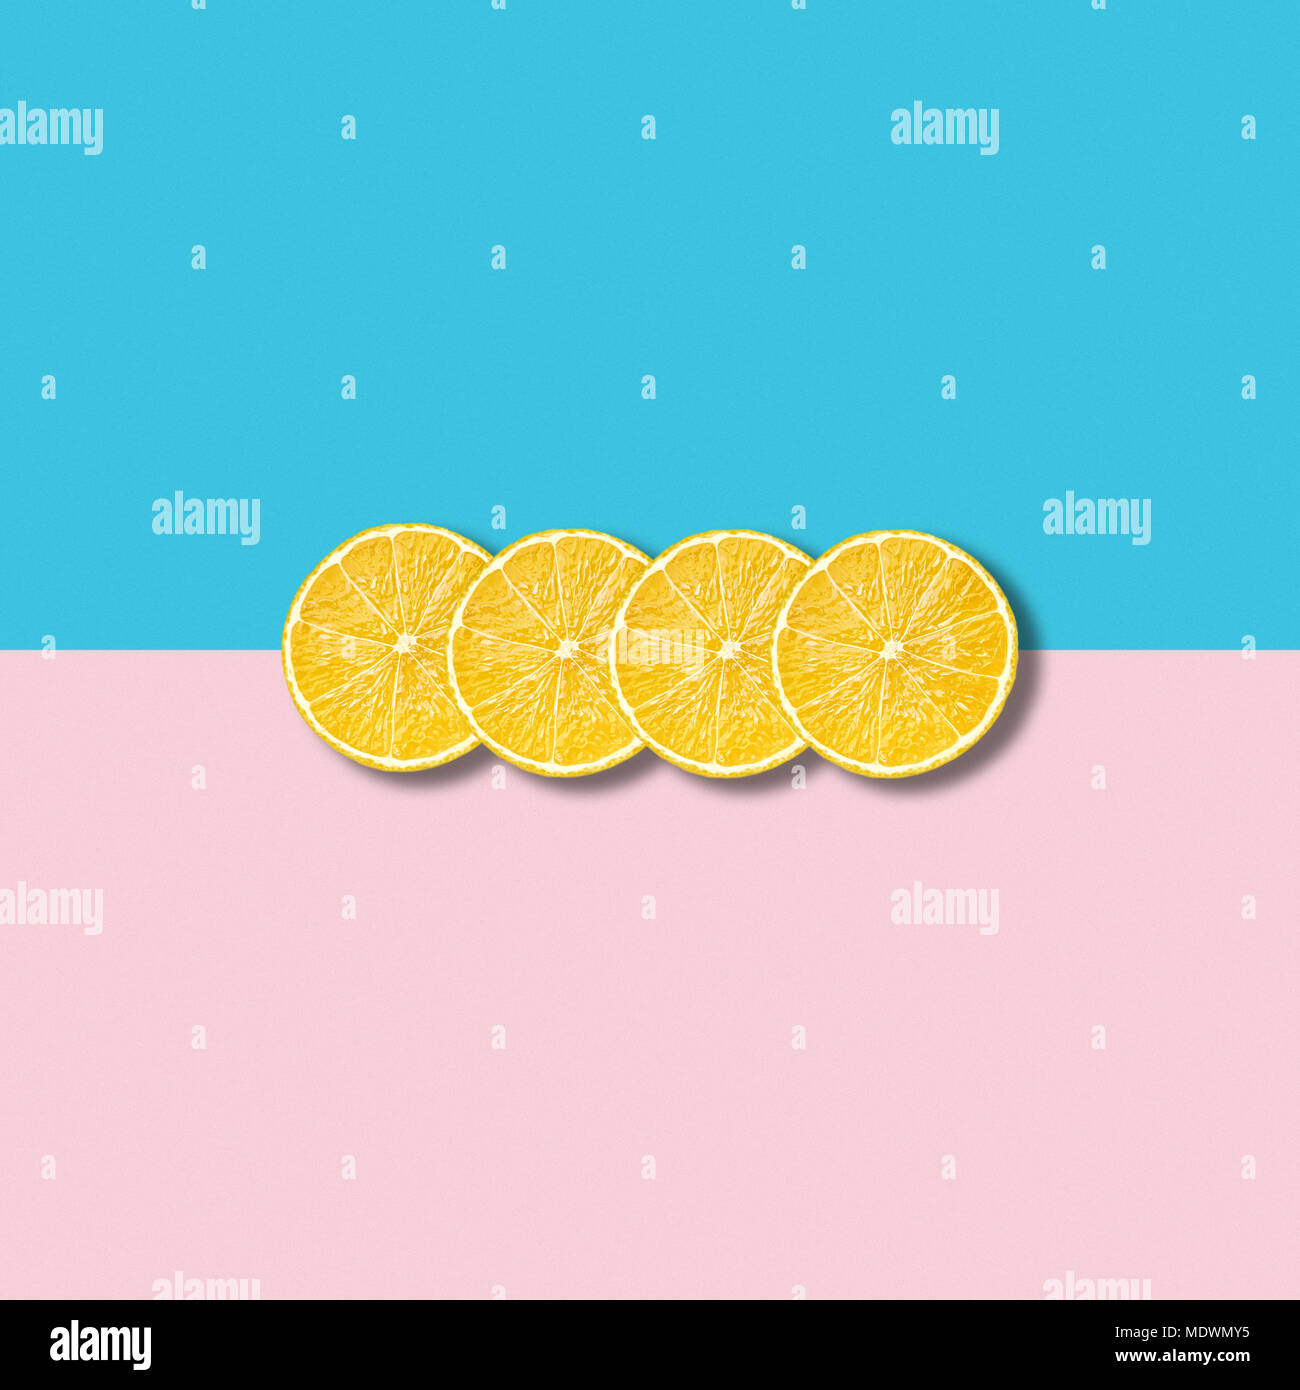 Un minimum d'abstract illustration avec groupe de tranches de citron sur fond turquoise et rose pastel Photo Stock